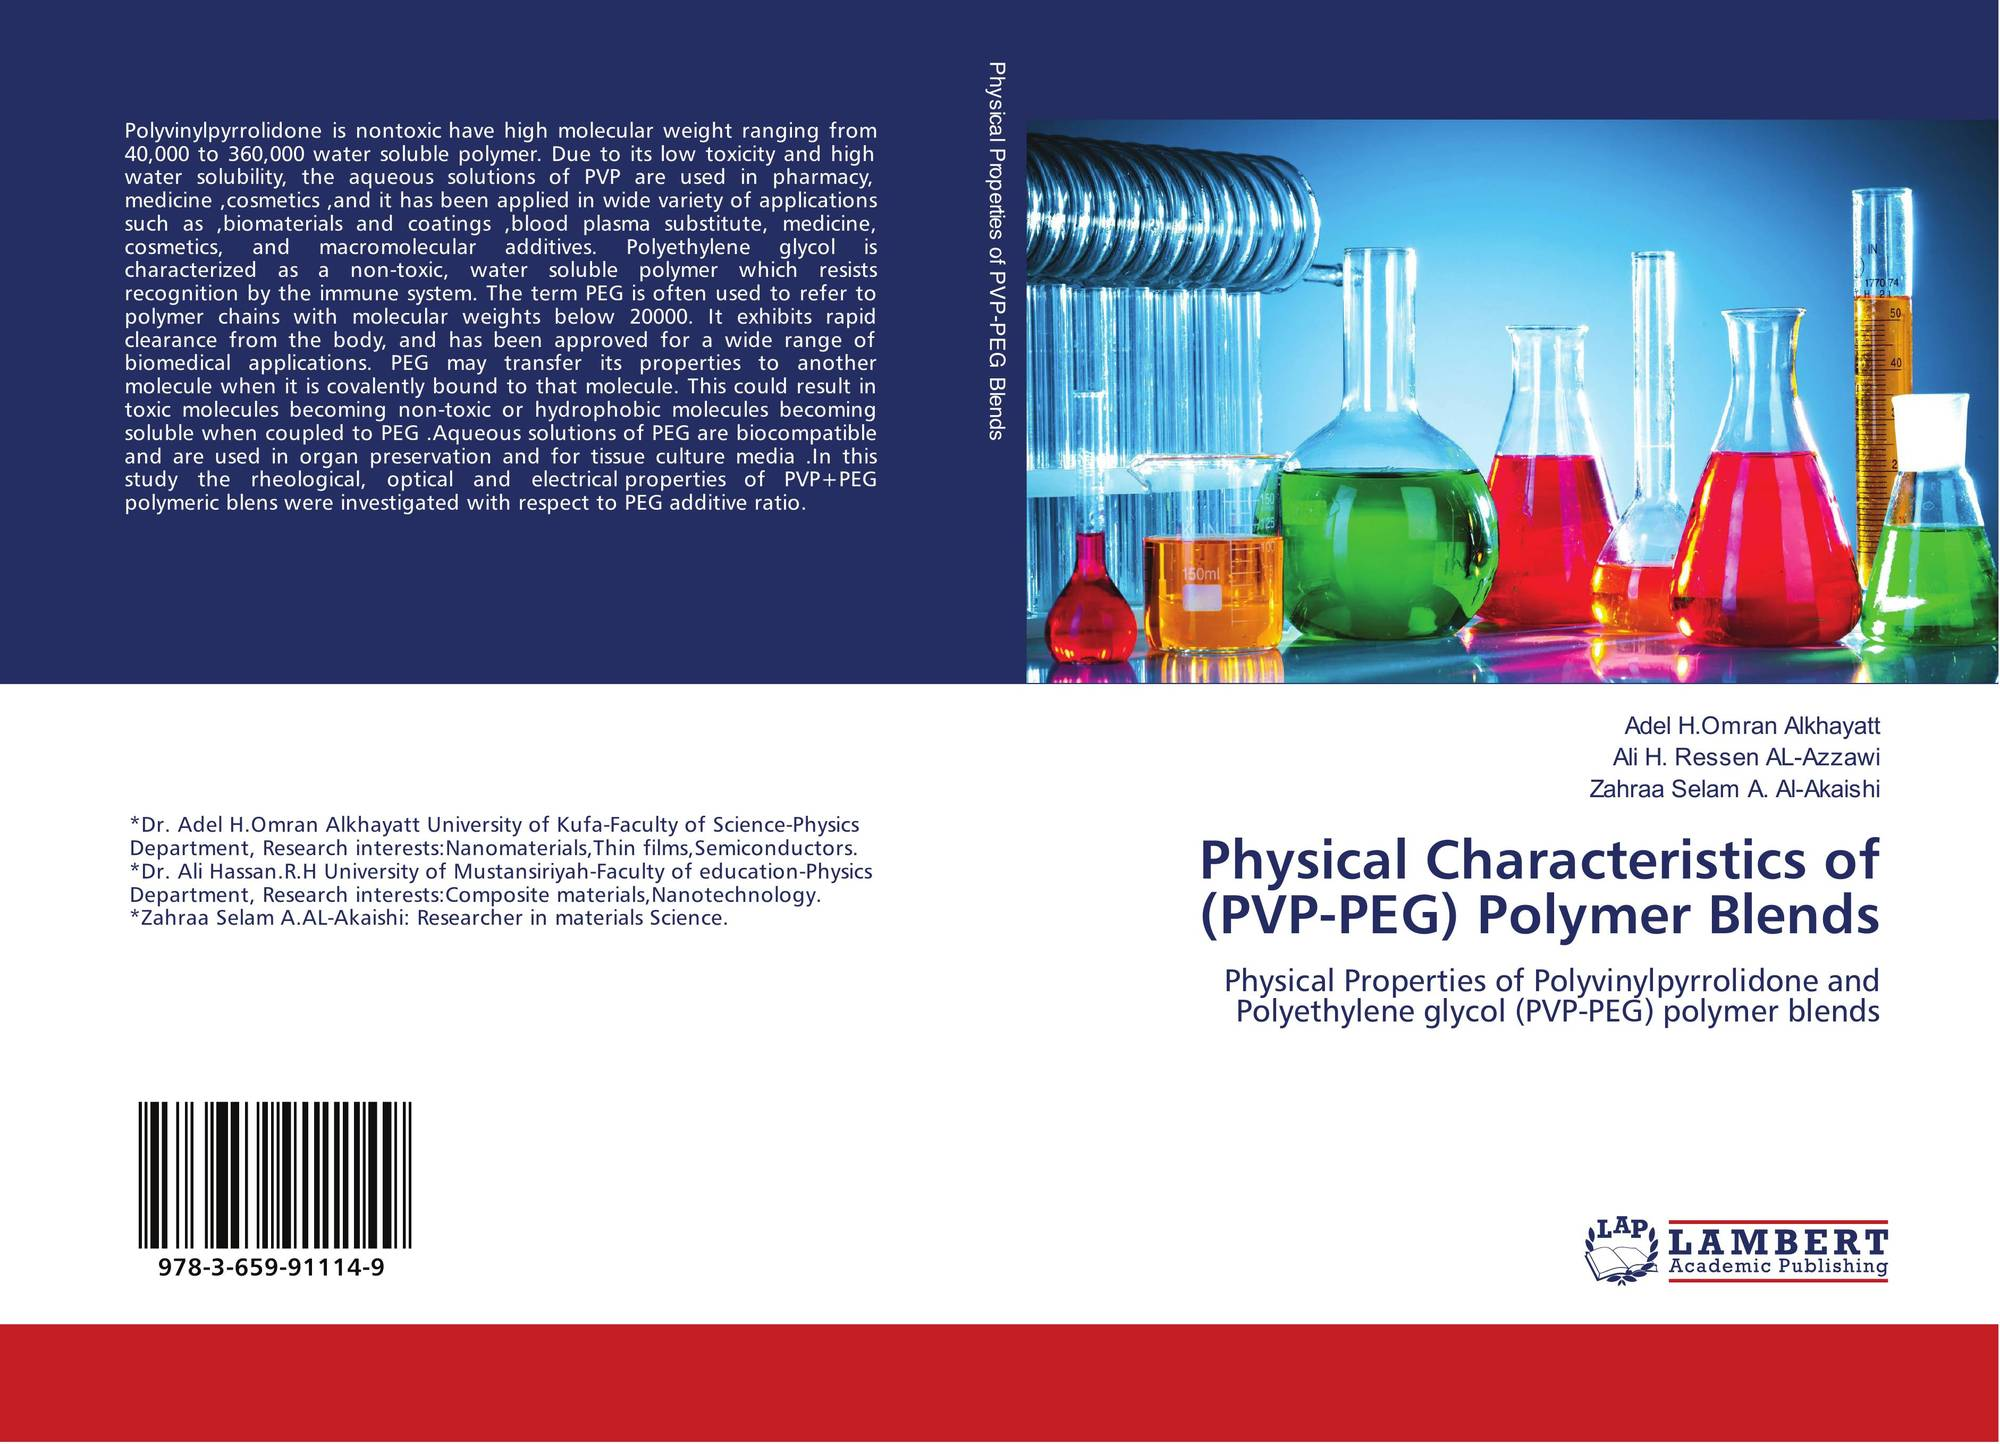 Physical Characteristics of (PVP-PEG) Polymer Blends, 978-3-659